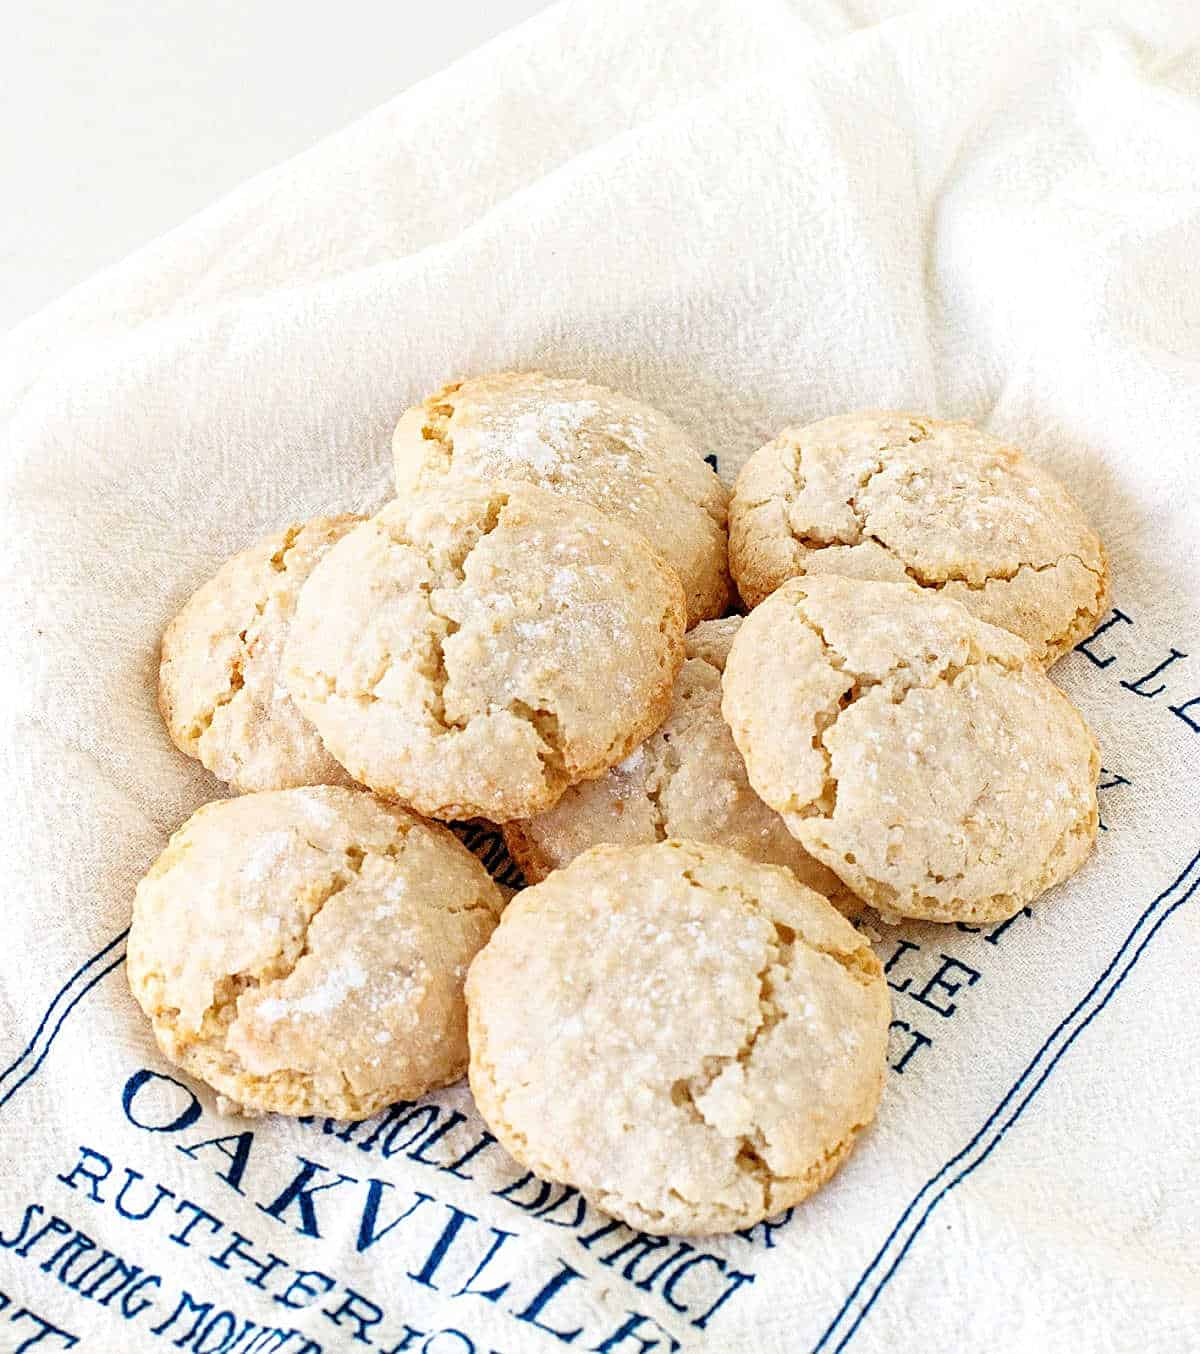 Several almond crinkled cookies on white and blue kitchen towel